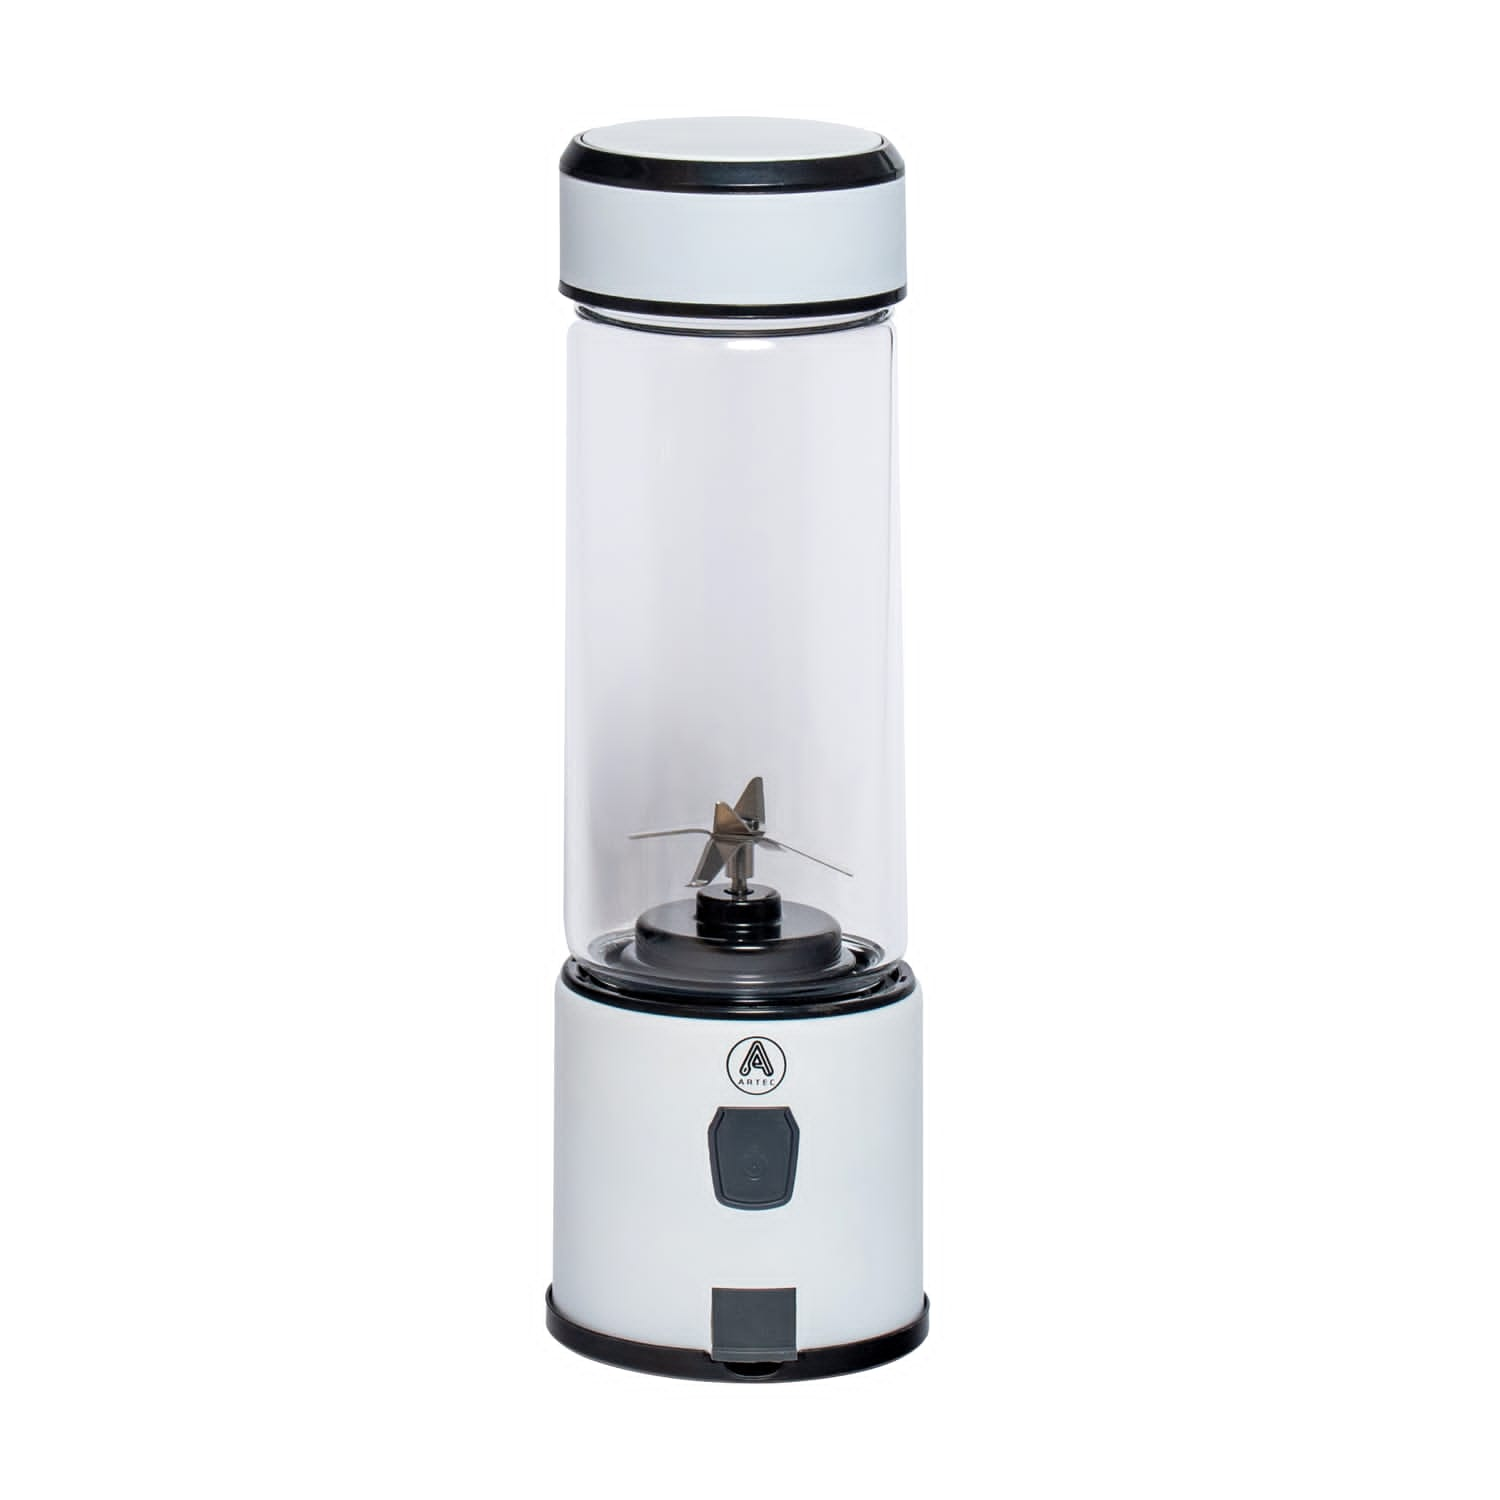 Portable blender with USB power supply